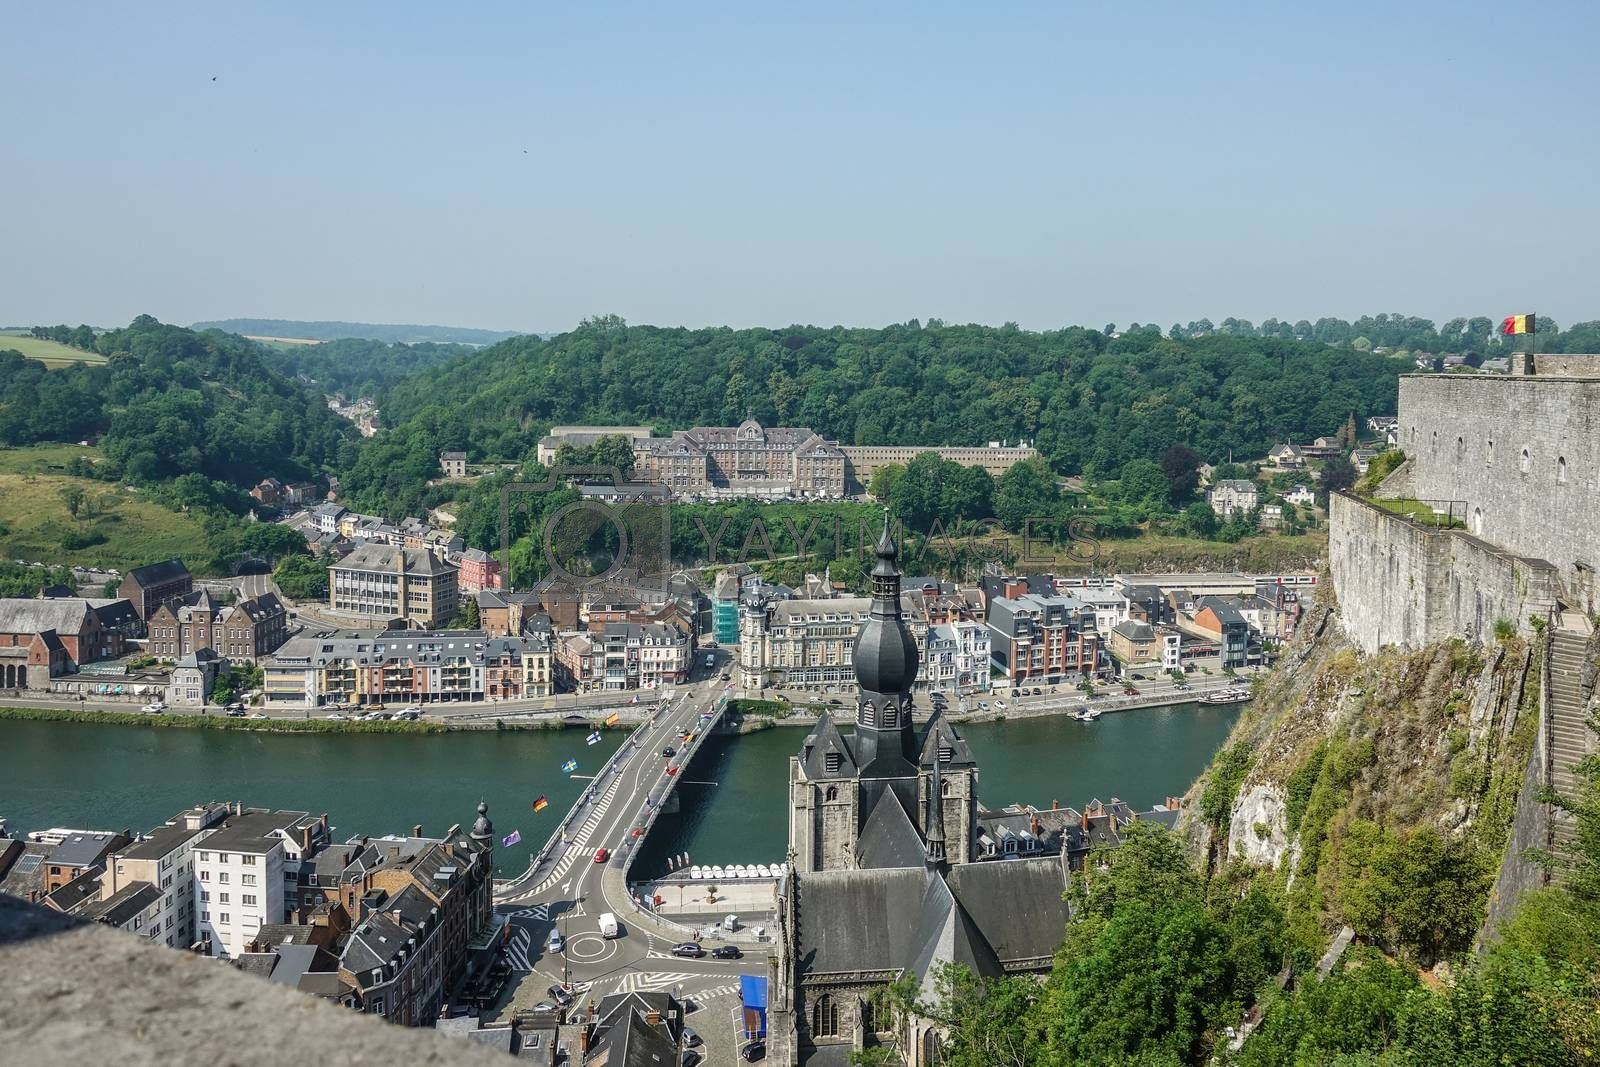 Dinant, Belgium - June 26, 2019: Seen from Citadelle. Large building on top is College Notre Dame de Bellevue, school system from primary to high school. Forests in back. Church and ramparts of Citadelle.